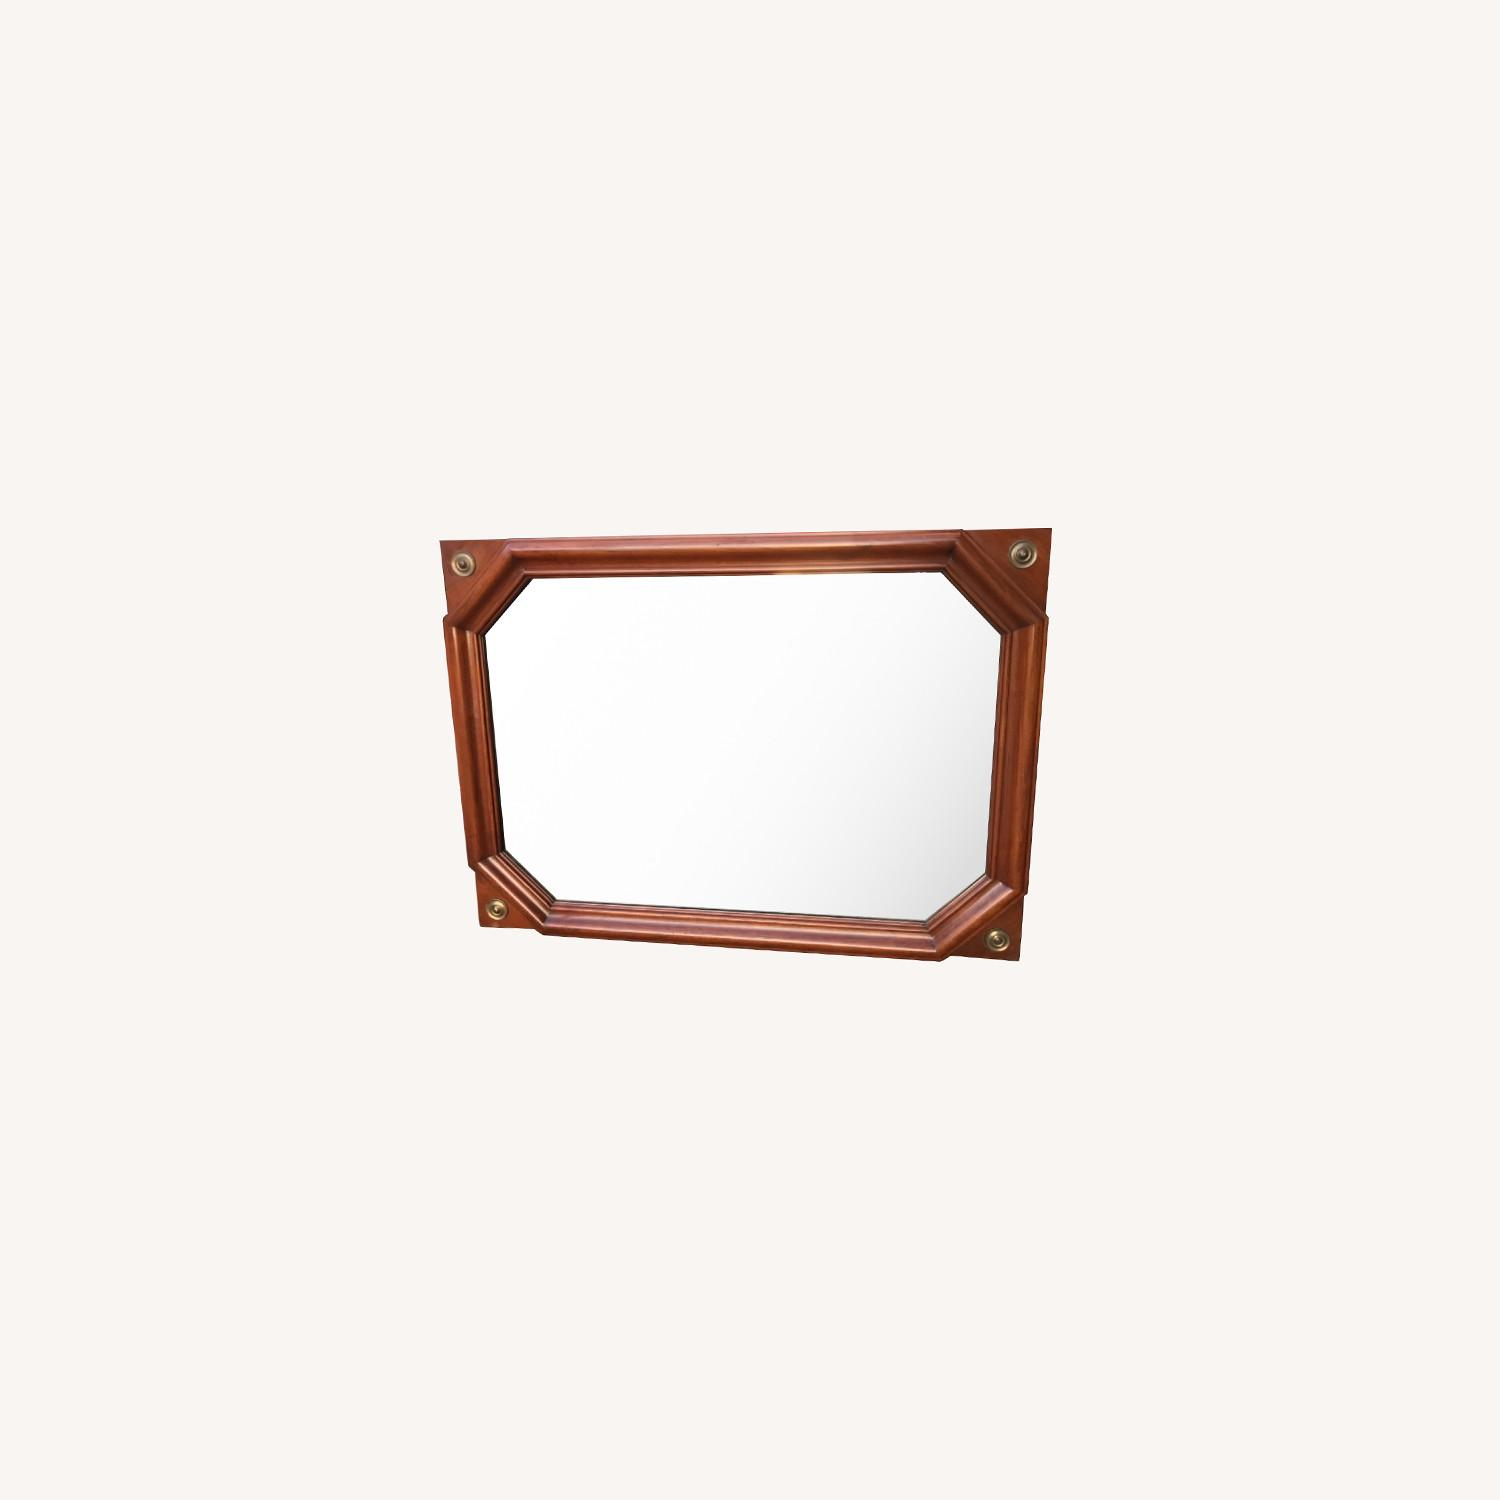 Vintage 1970s Wooden Framed Wall Mirror - image-0